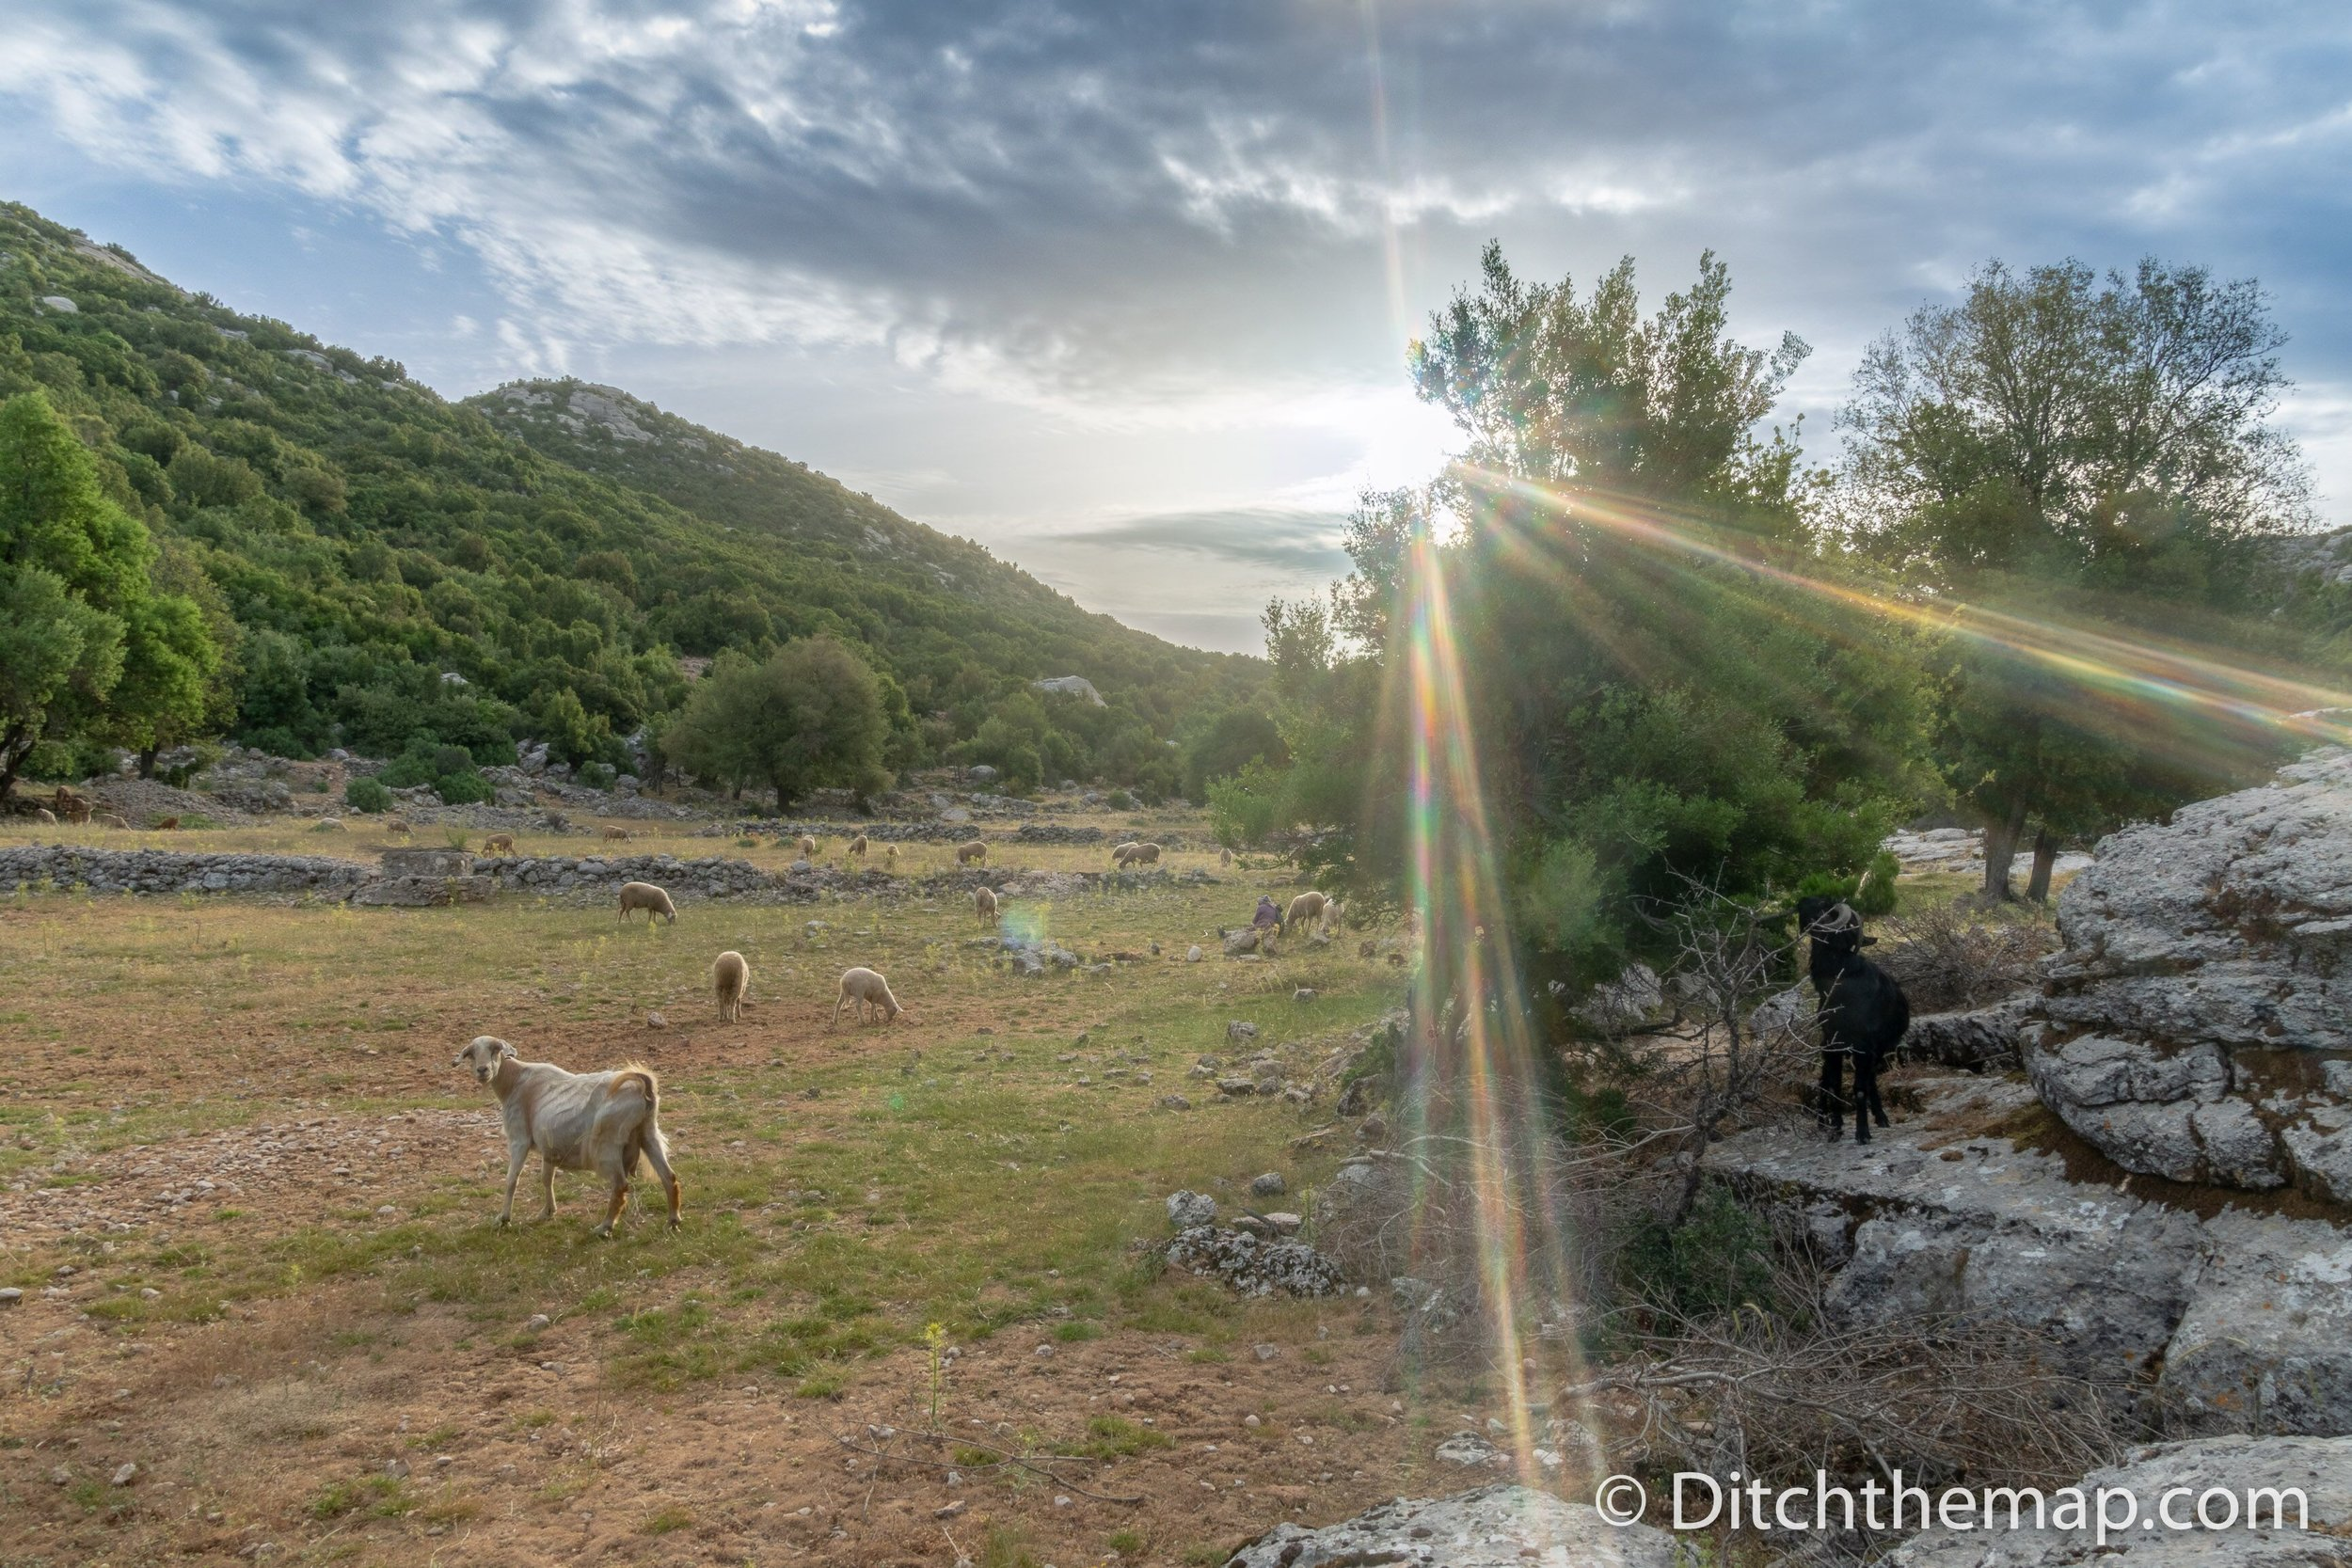 Our morning view on the Lycian Way